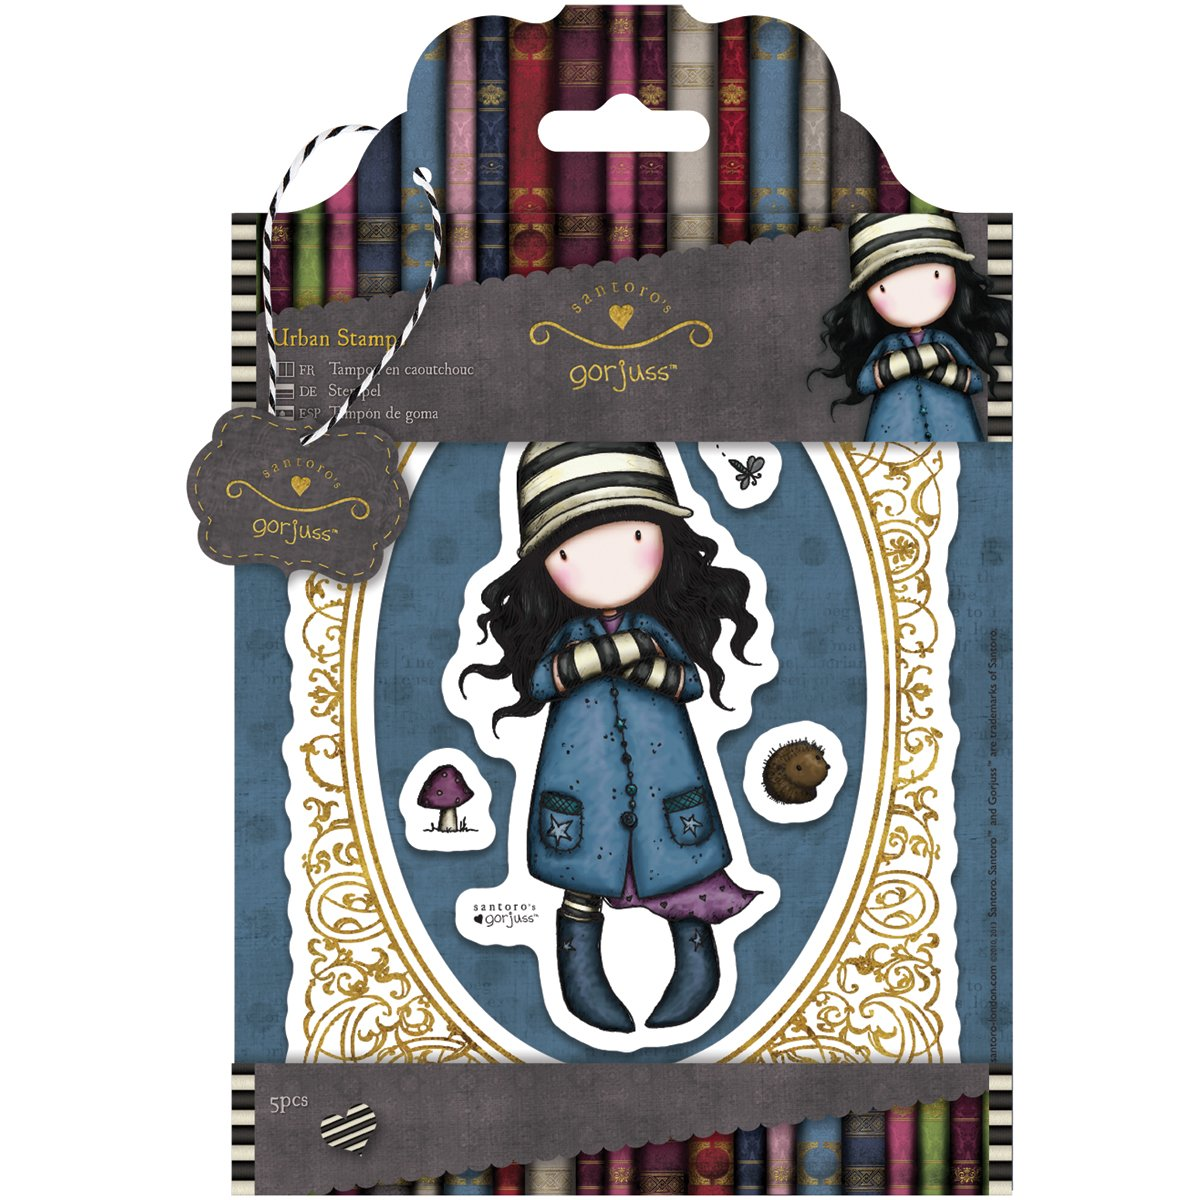 Simply Gorjuss Urban Stamps-Toadstools, 5 Images